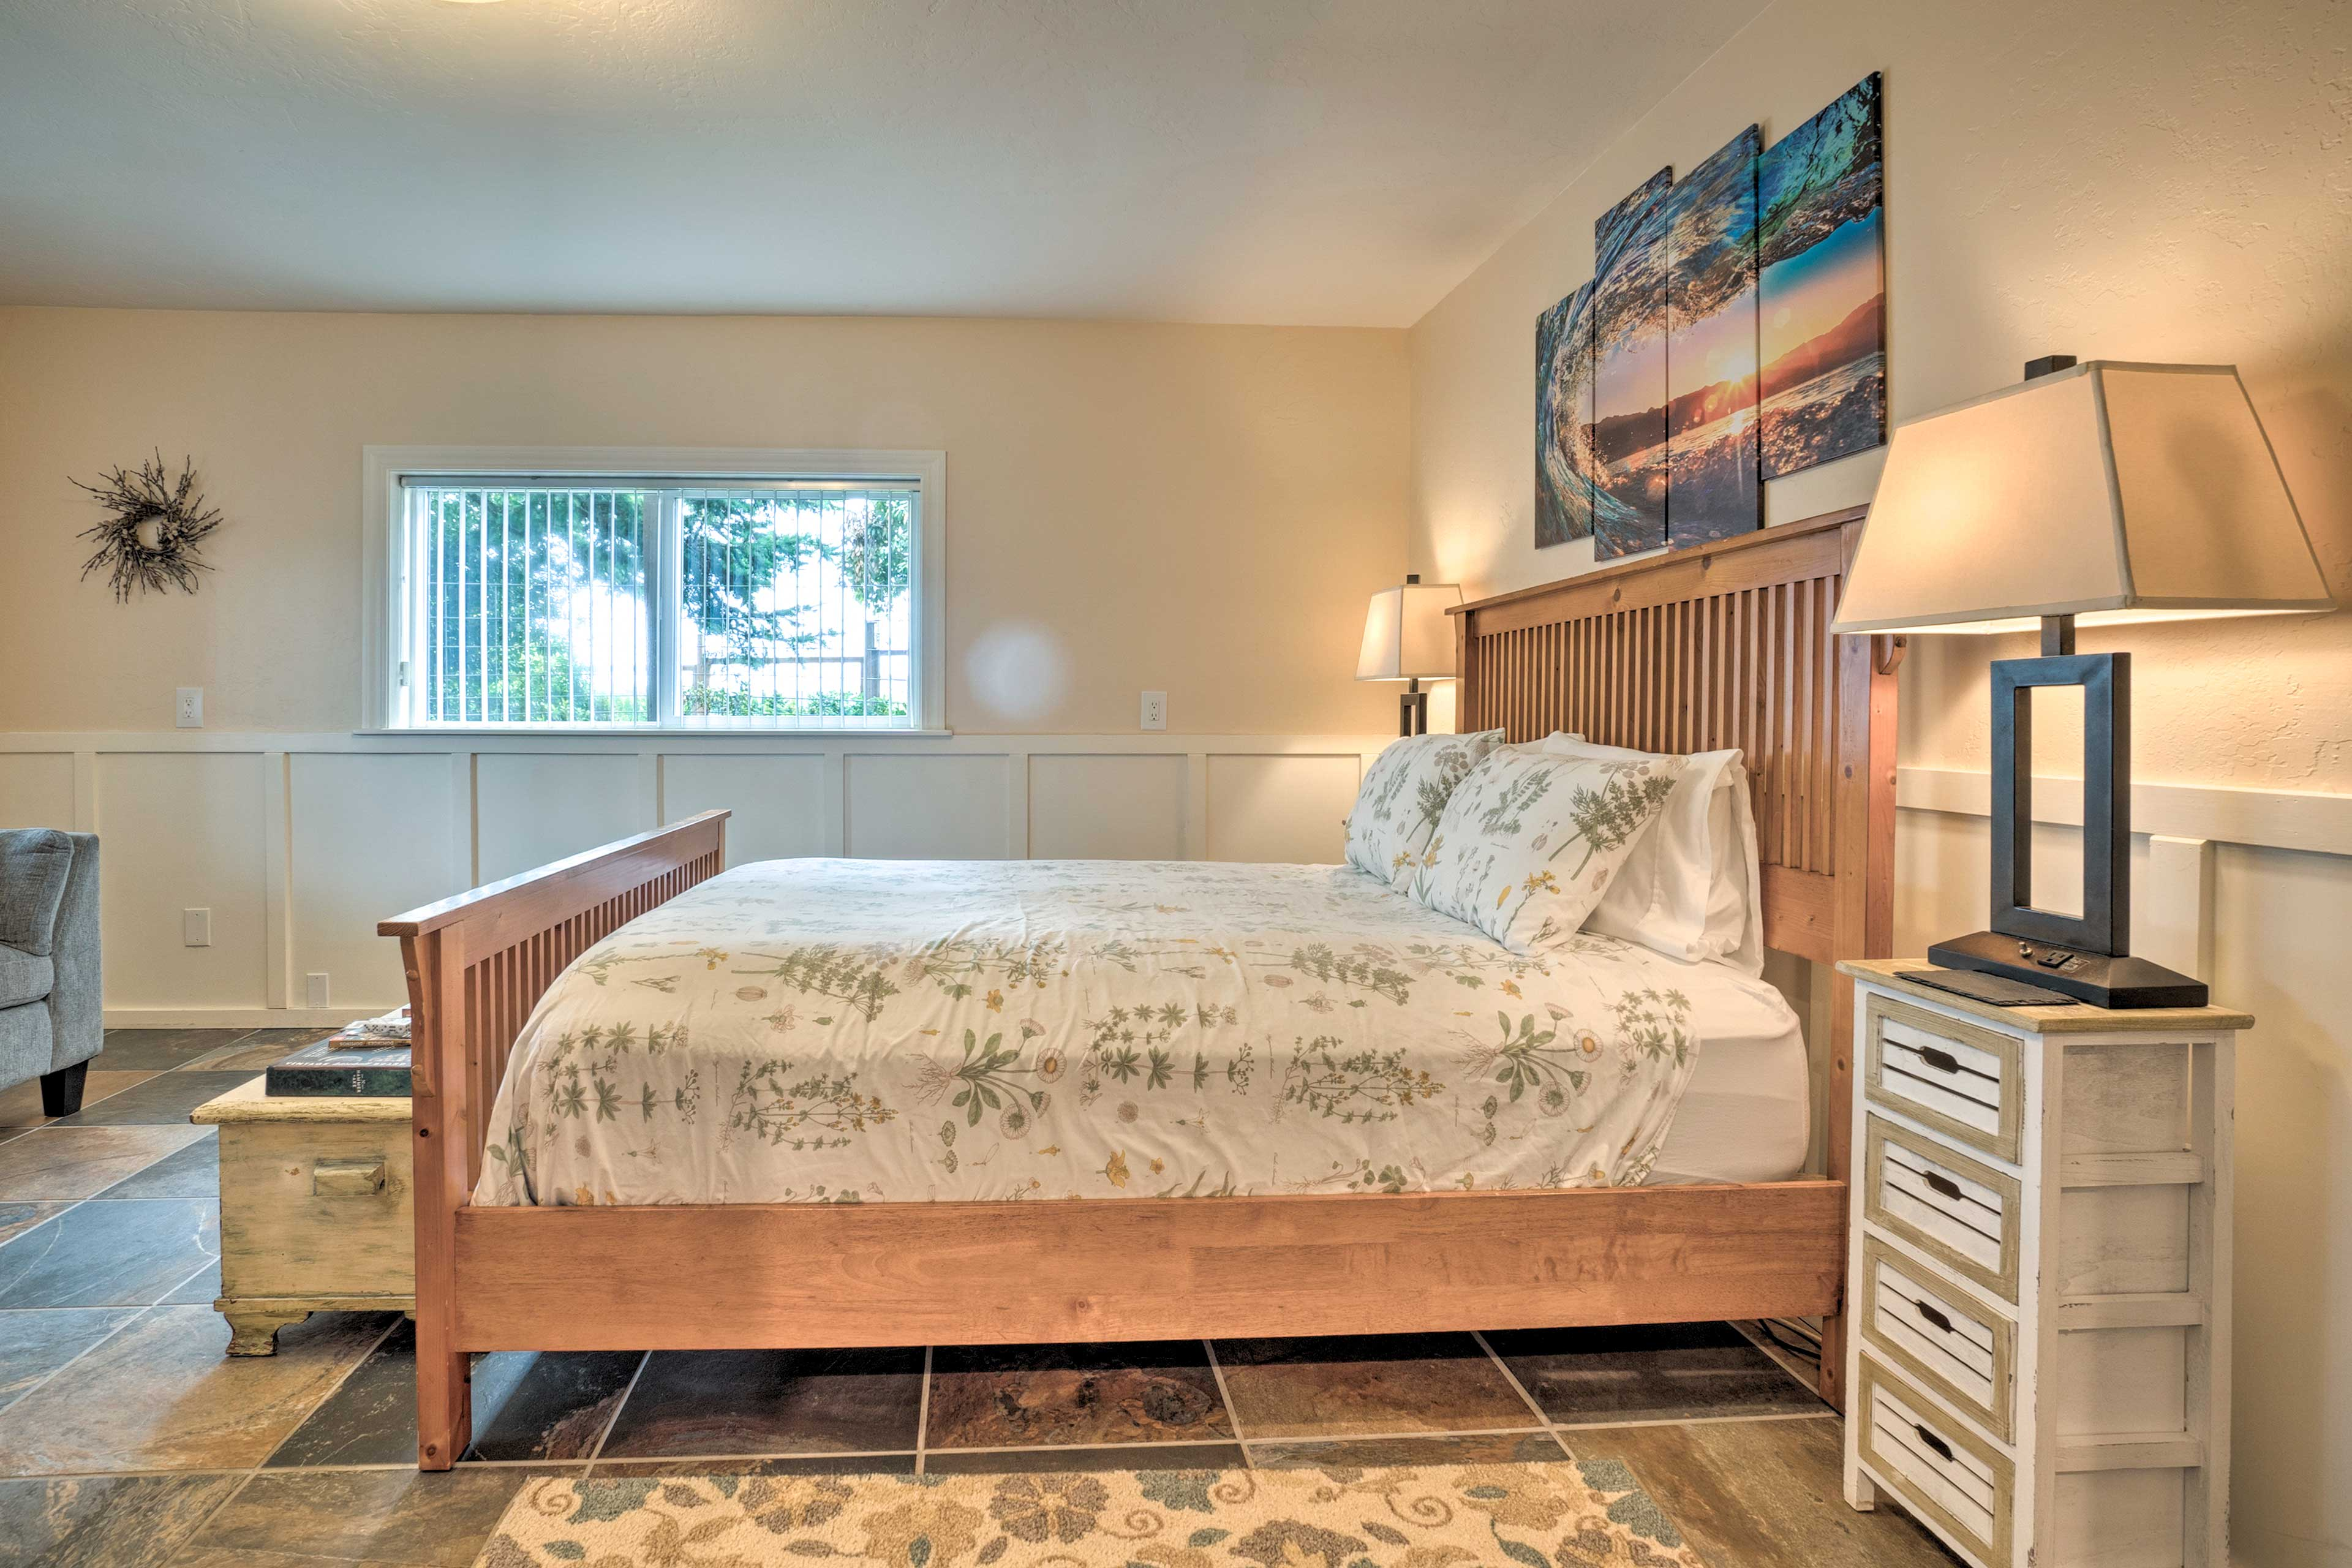 With a plush queen bed, the bedroom sleeps 2.